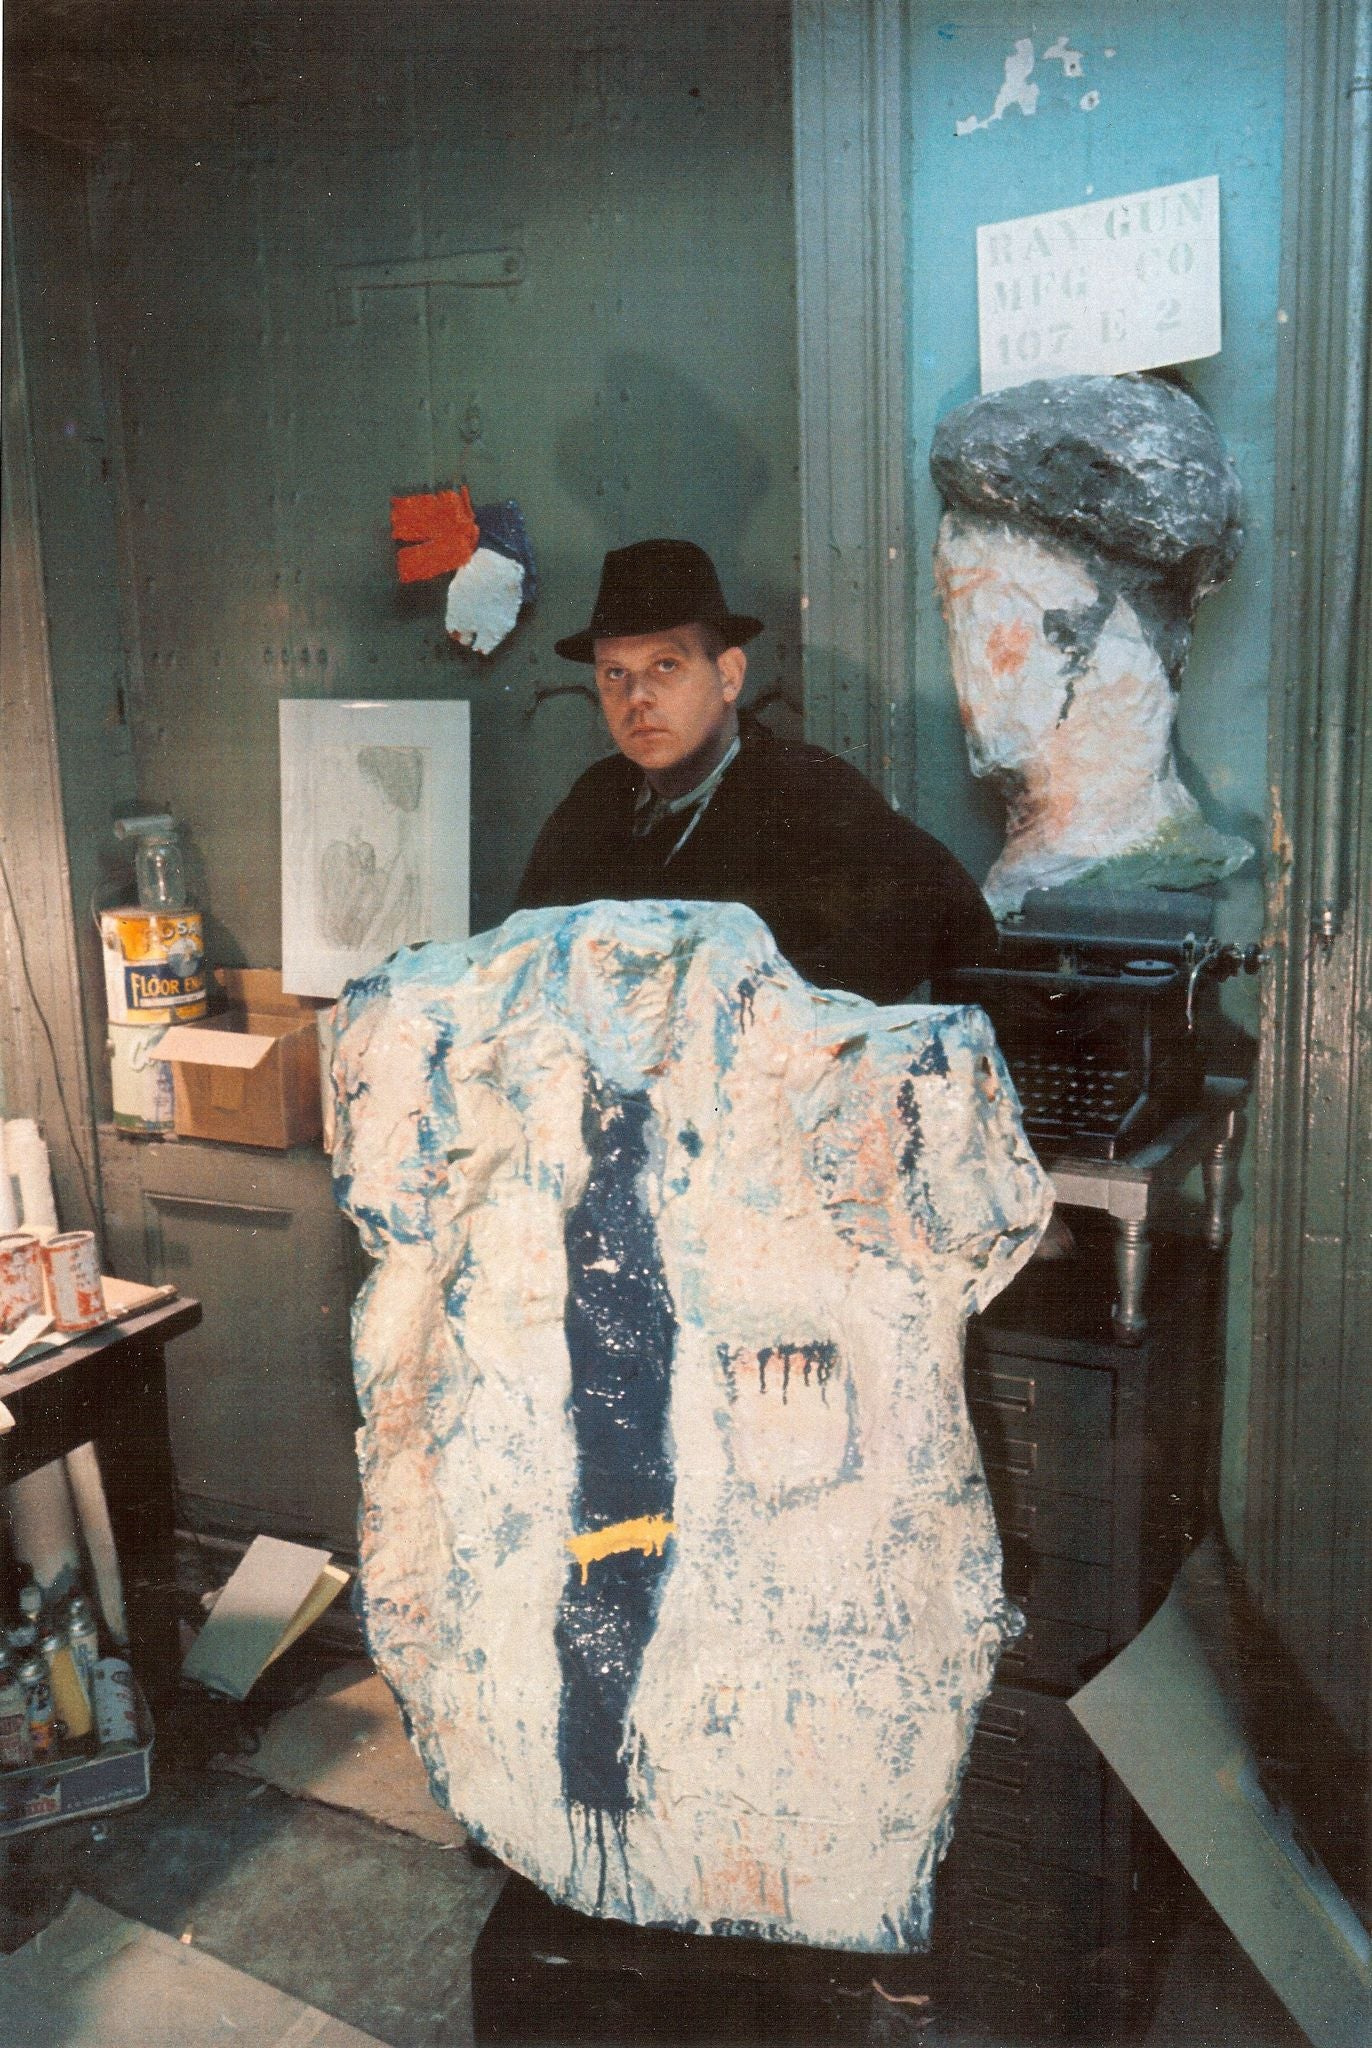 Claes Oldenburg (1929- ) with White Shirt with Blue Tie Ray Gun Mfg. Co. Studio, 107 East 2nd Street, New York, 1965 Default Title